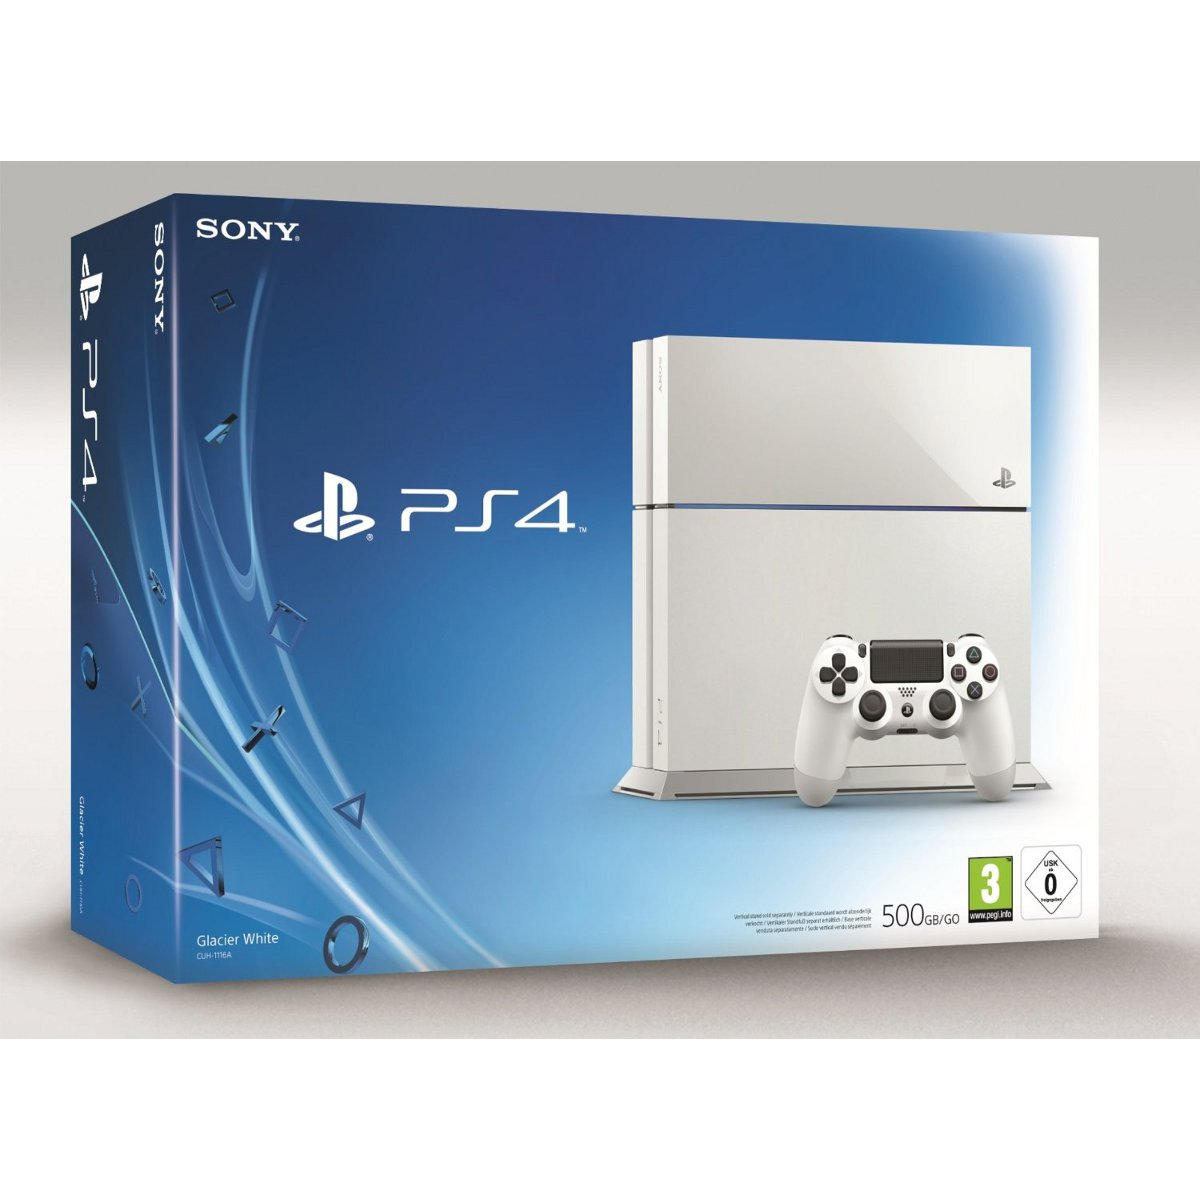 Sony playstation 4 blanche console ps4 sony interactive entertainment sur - Console ps3 500 go pas cher ...